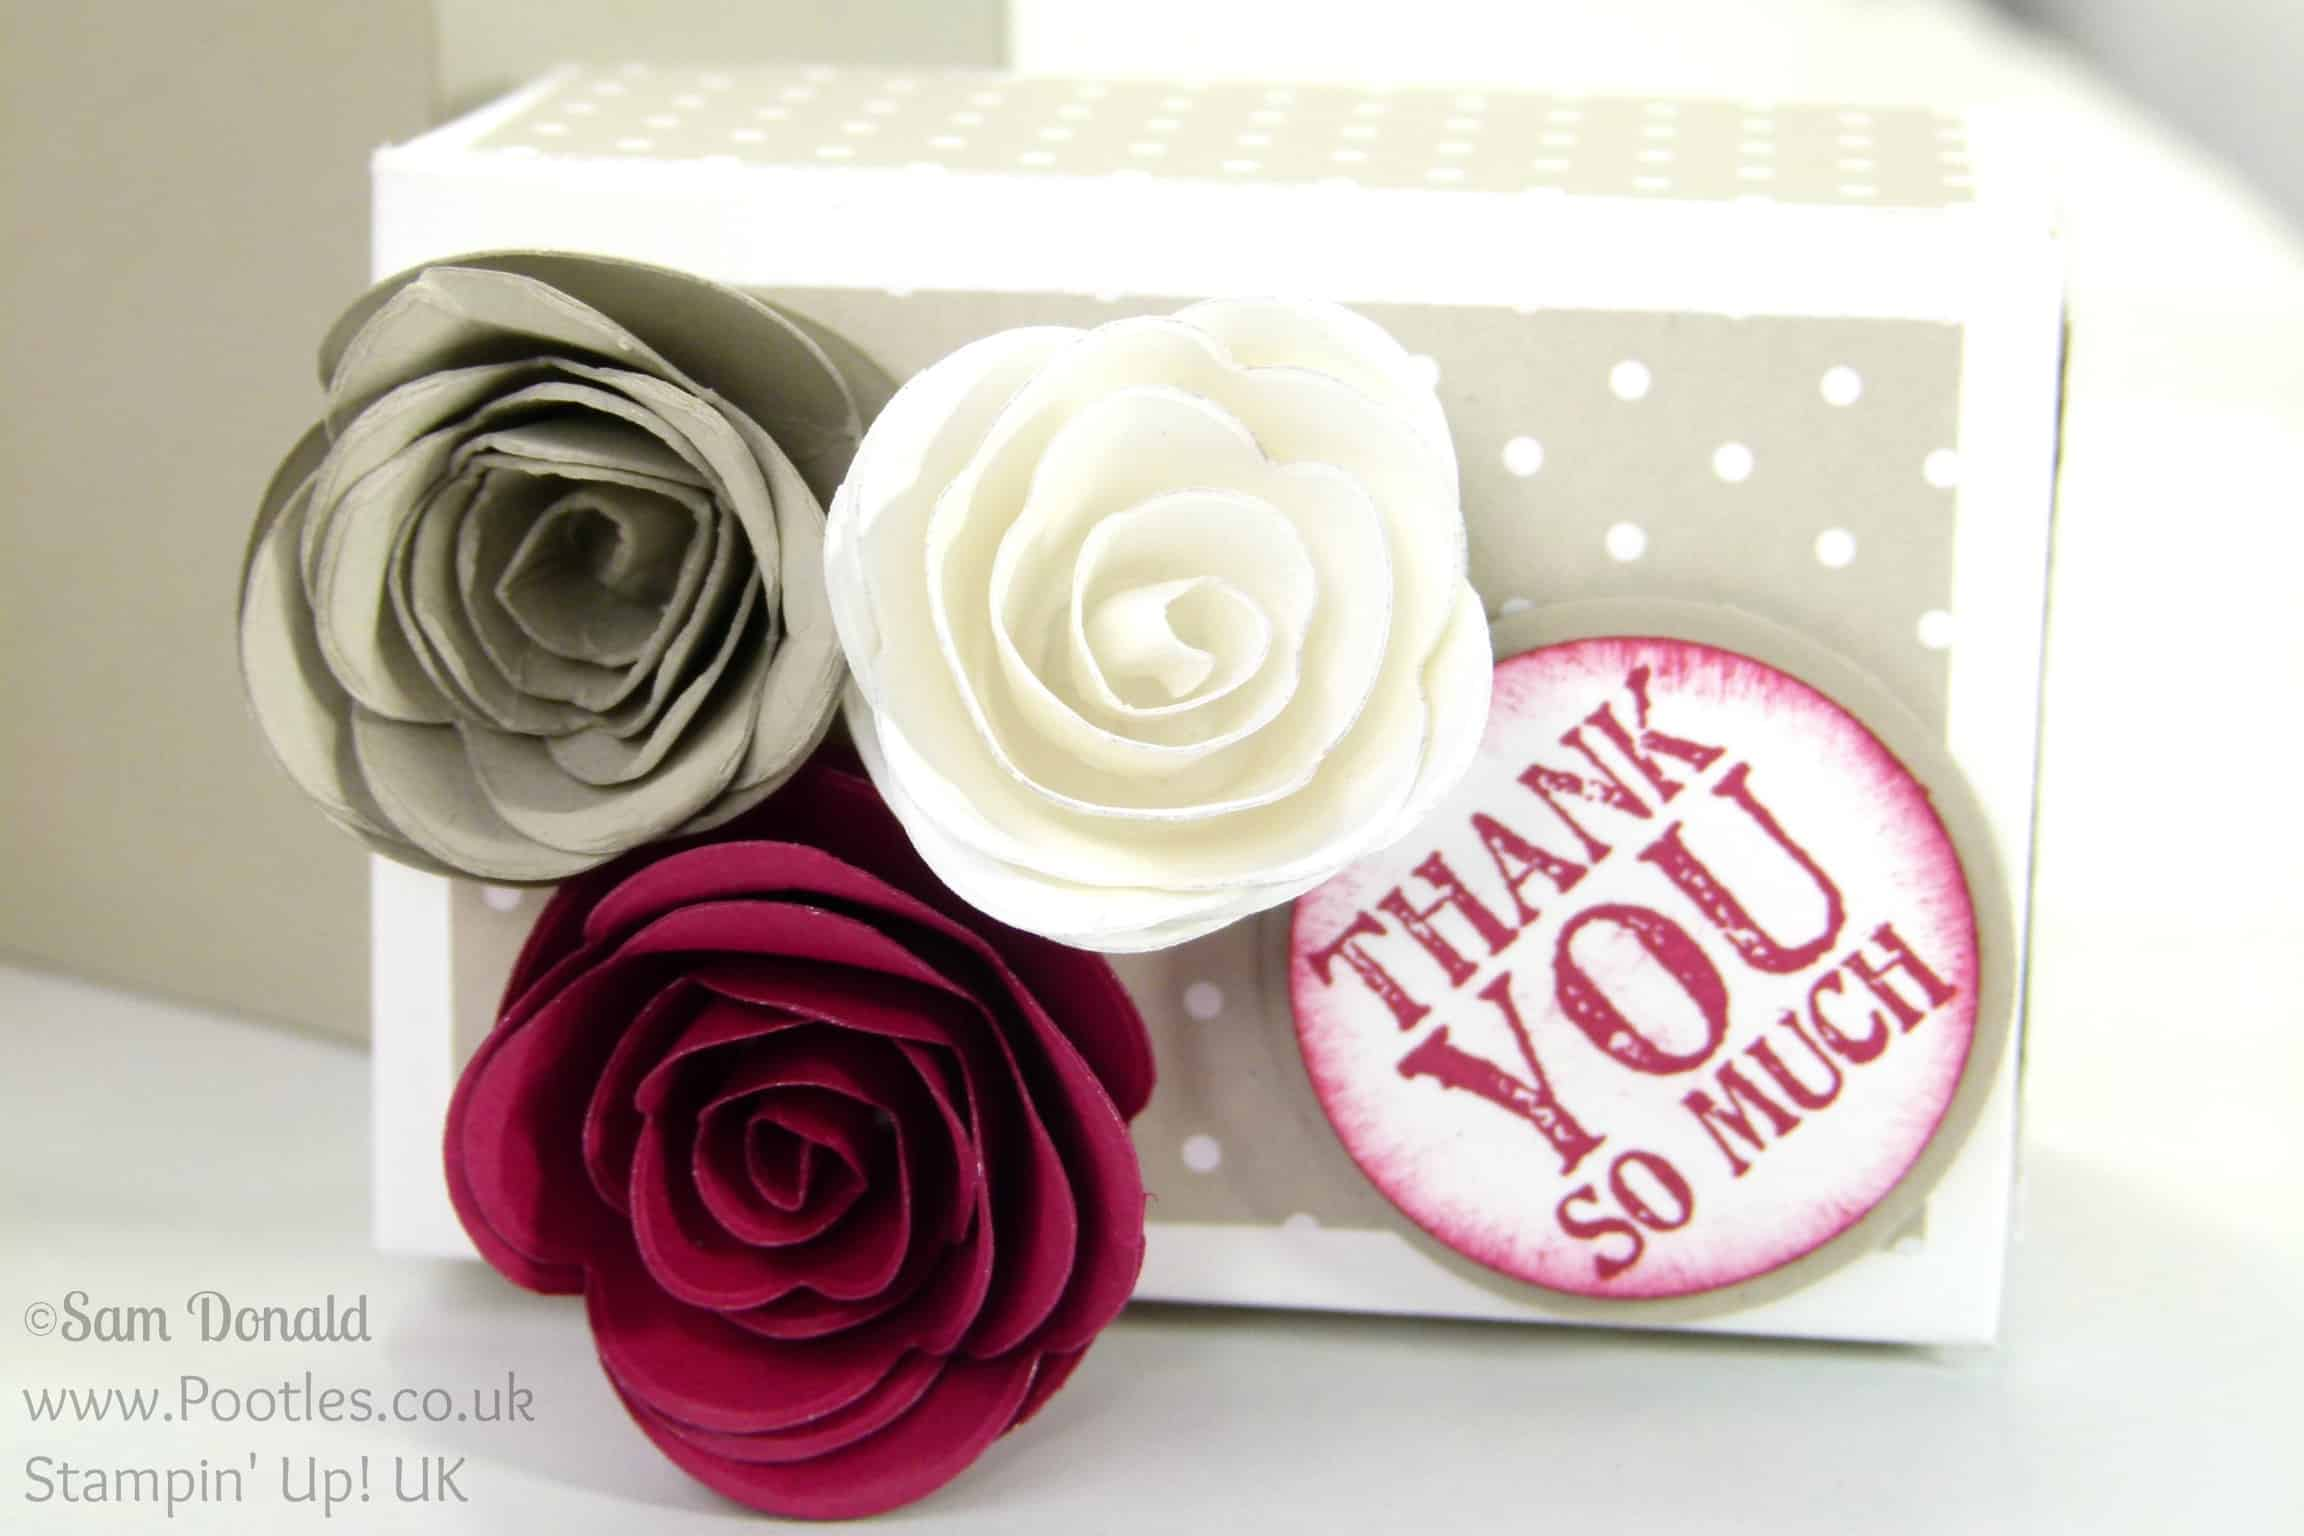 Stampin' Up! UK Demonstrator - Pootles. Rectangular Lidded Box Tutorial with Roses using Stampin' Up! Spiral Flower Die Close Up